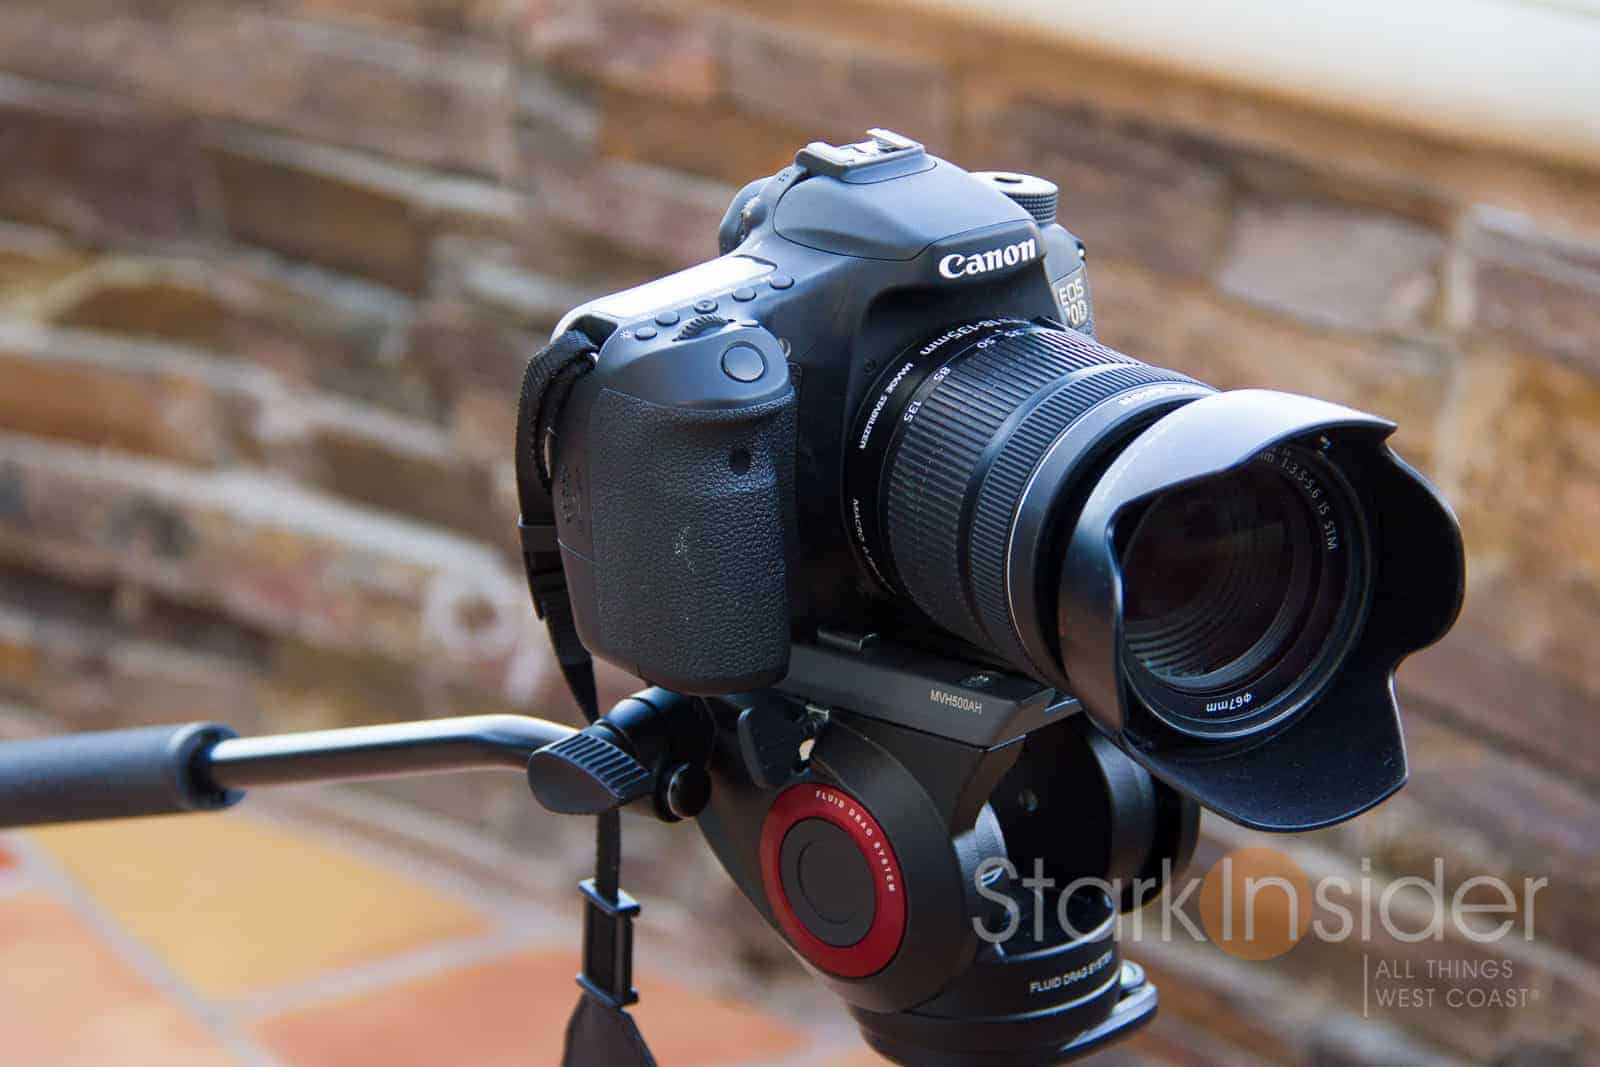 Camera Dslr Camera For Video Recording top 5 best accessories for shooting video on dslr and mirrorless 4 manfrotto carbon fiber tripod